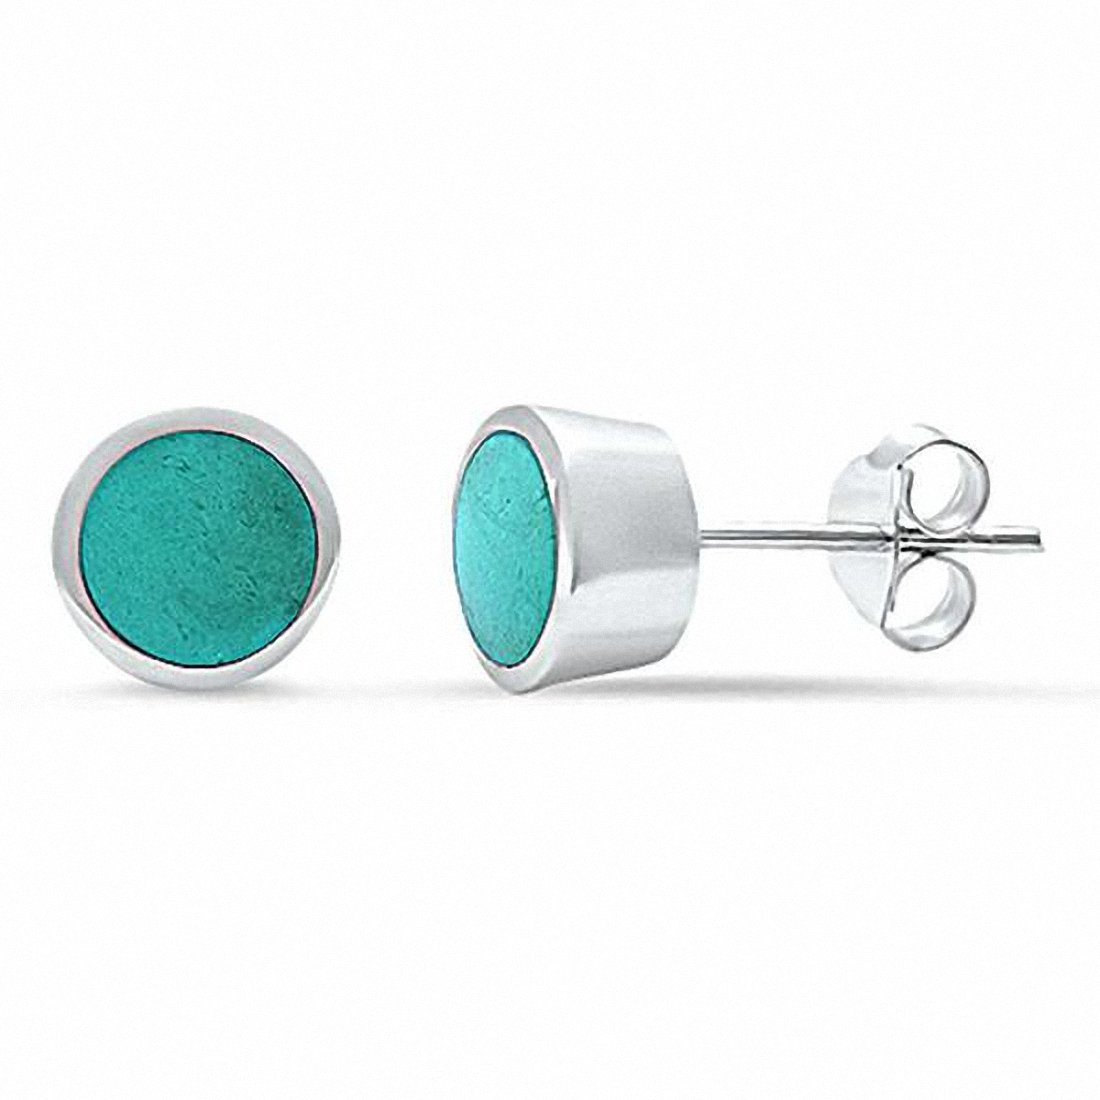 7mm Solitaire Bezel Style Stud Earrings Round Simulated Stone 925 Sterling Silver Choose Color